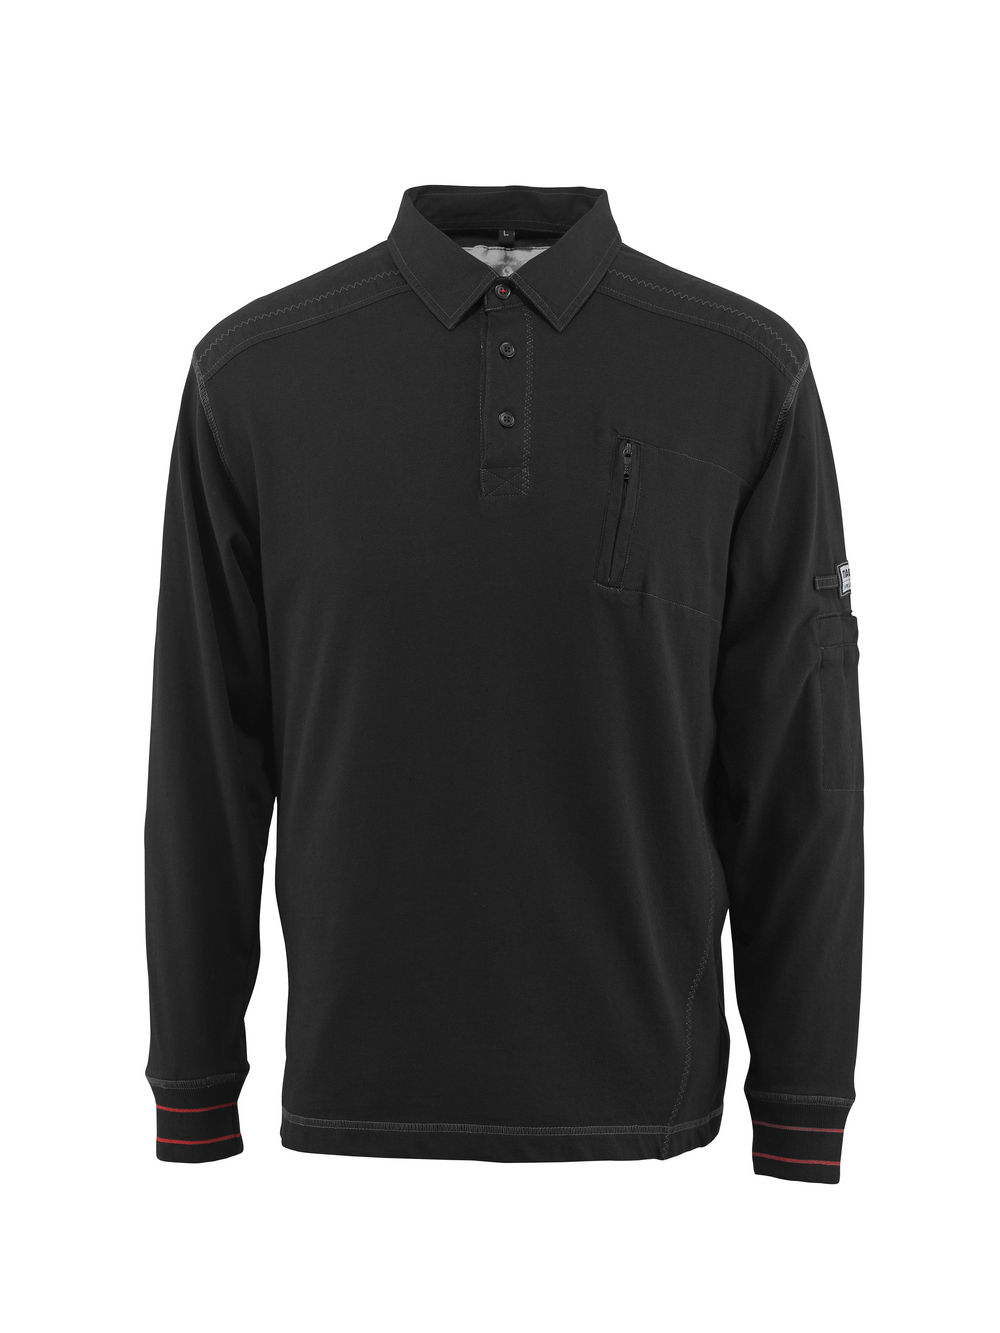 MASCOT IOS POLO SWEATSHIRT